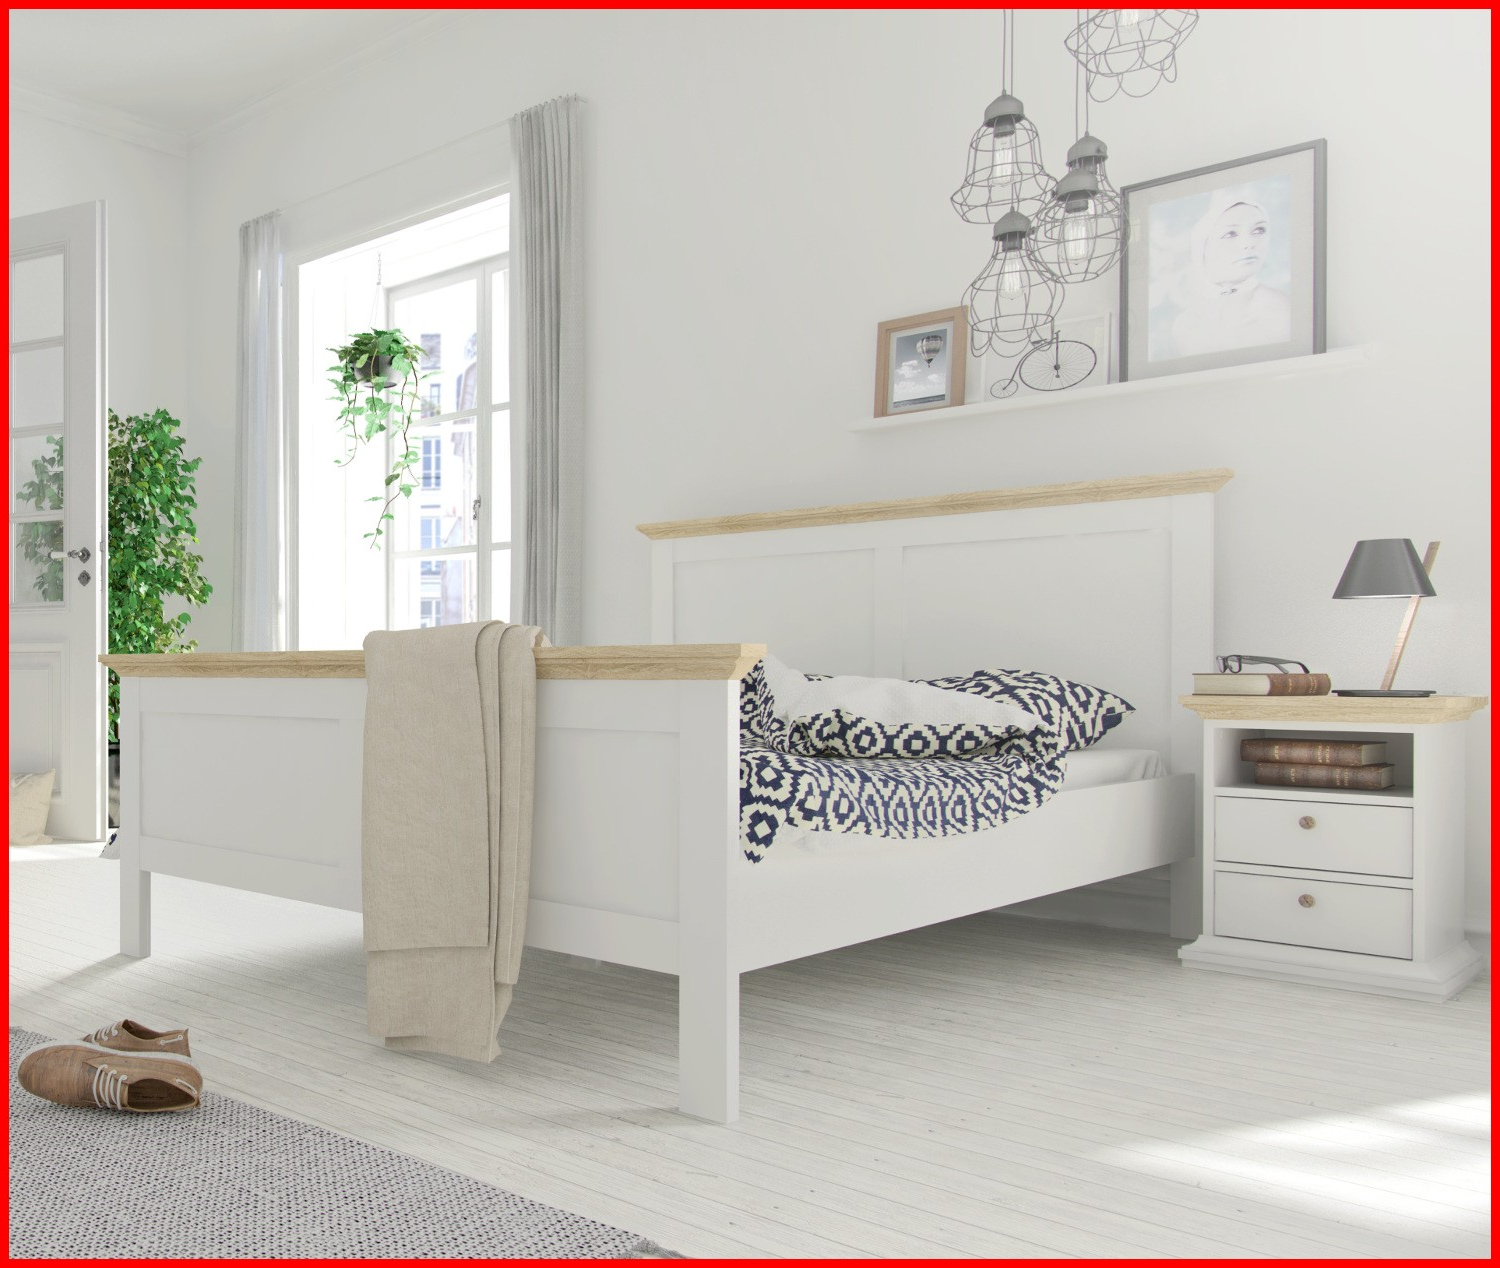 Cama infantil conforama affordable camas infantiles for Conforama muebles juveniles